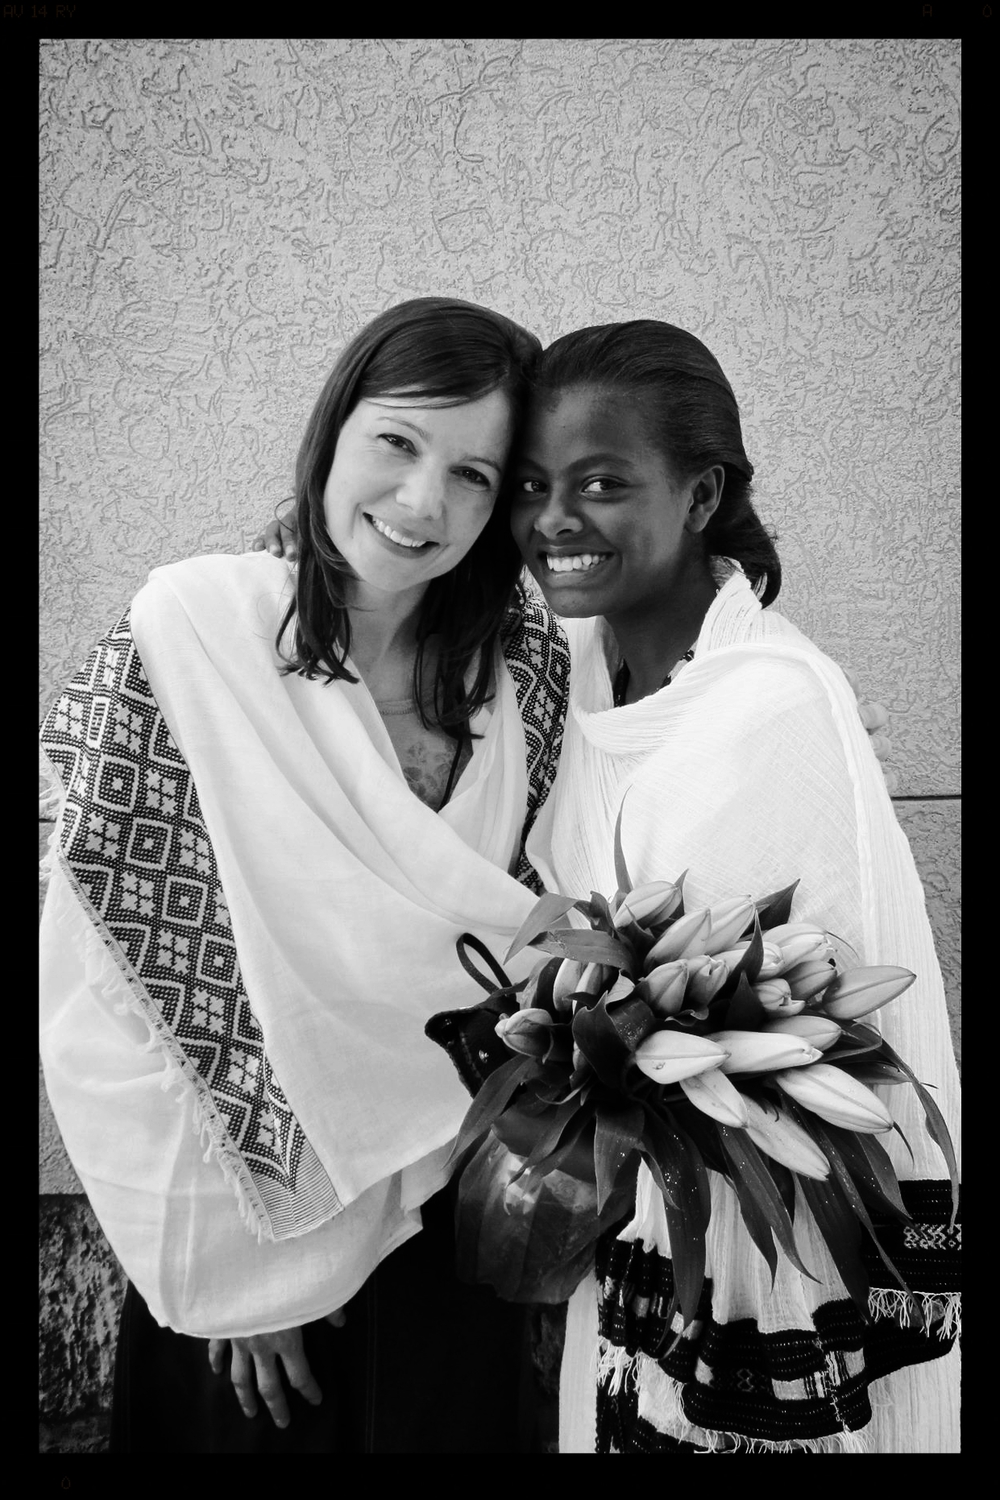 Trista & Mekdes (Compassion Child) 2013